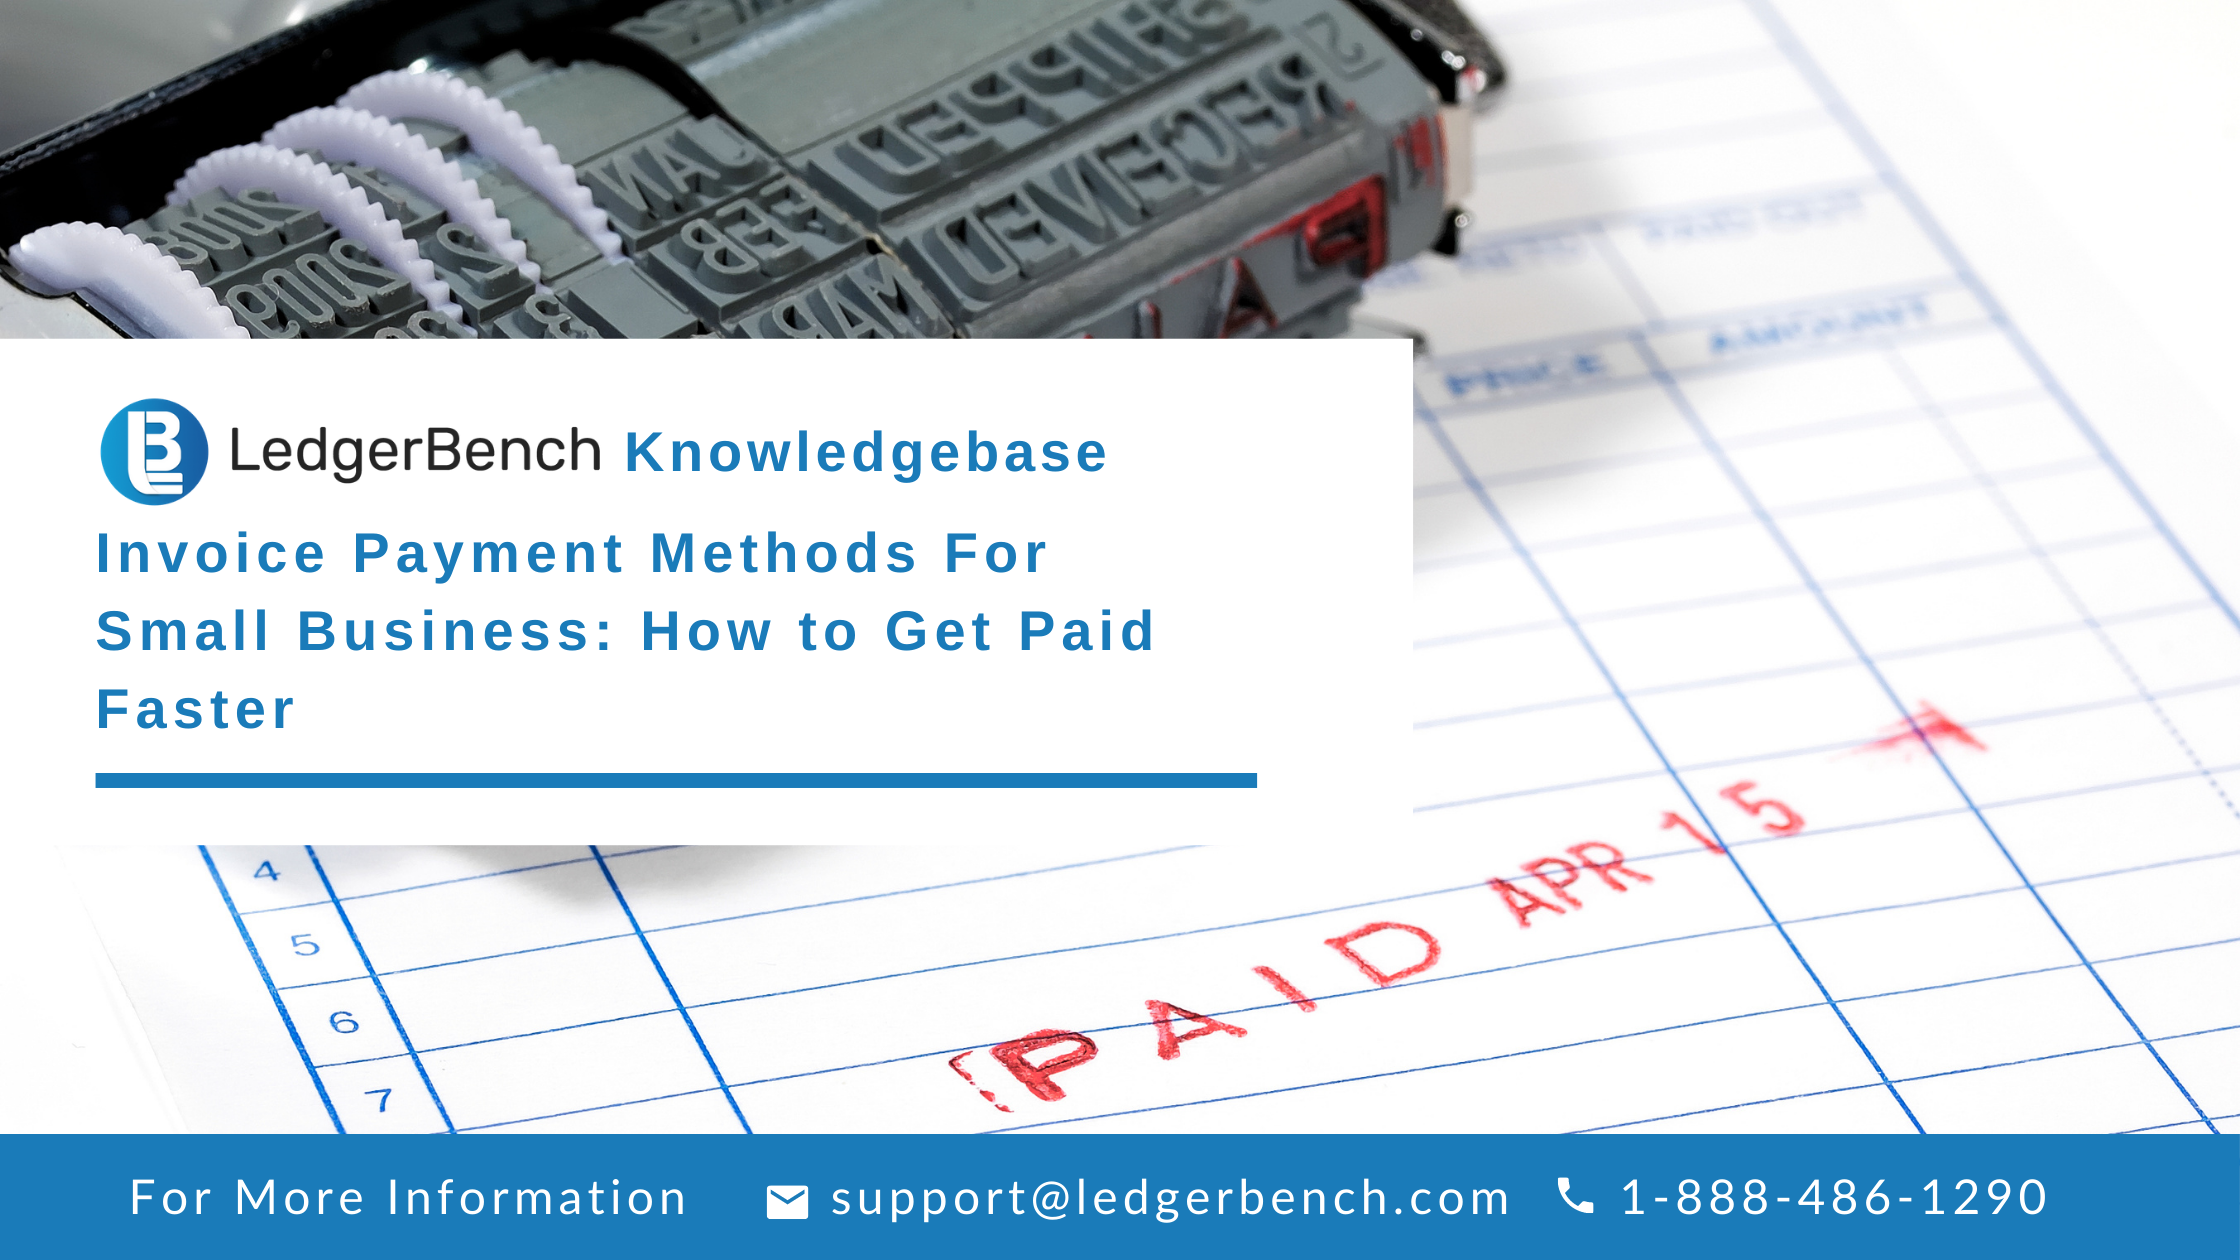 Invoice Payment Methods For Small Business: How to Get Paid Faster